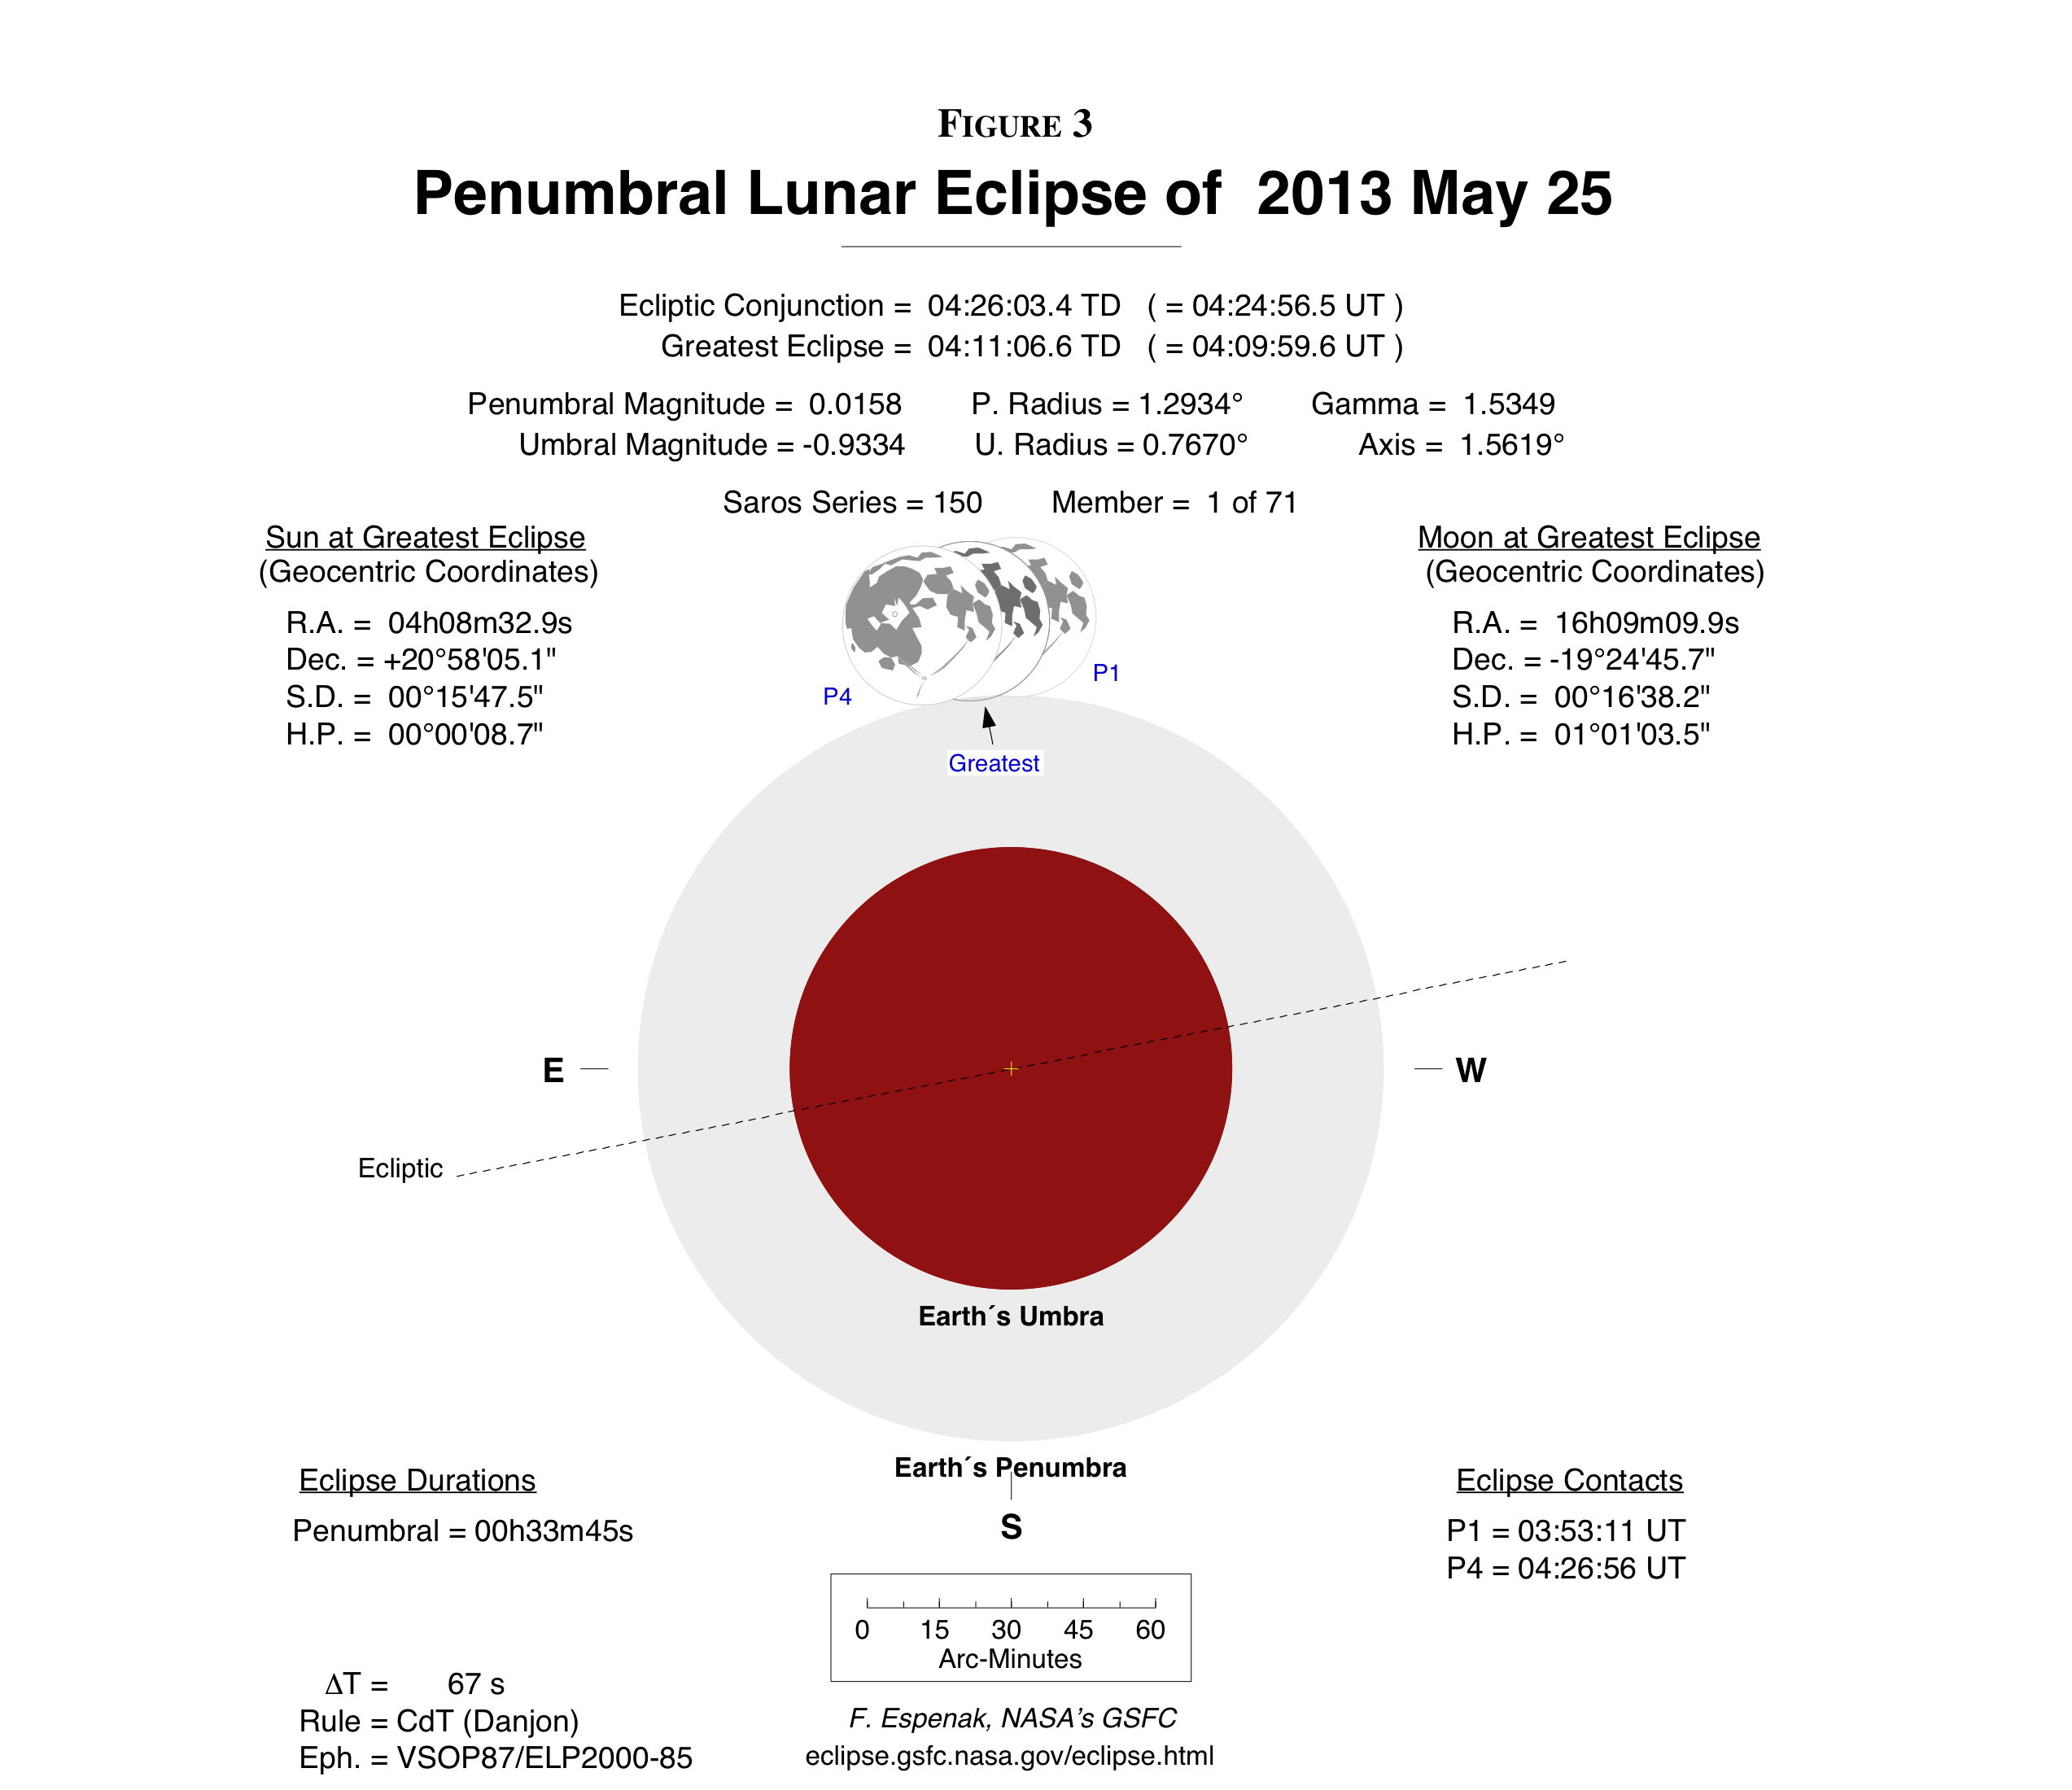 Penumbral Lunar Eclipse of May 25, 2013